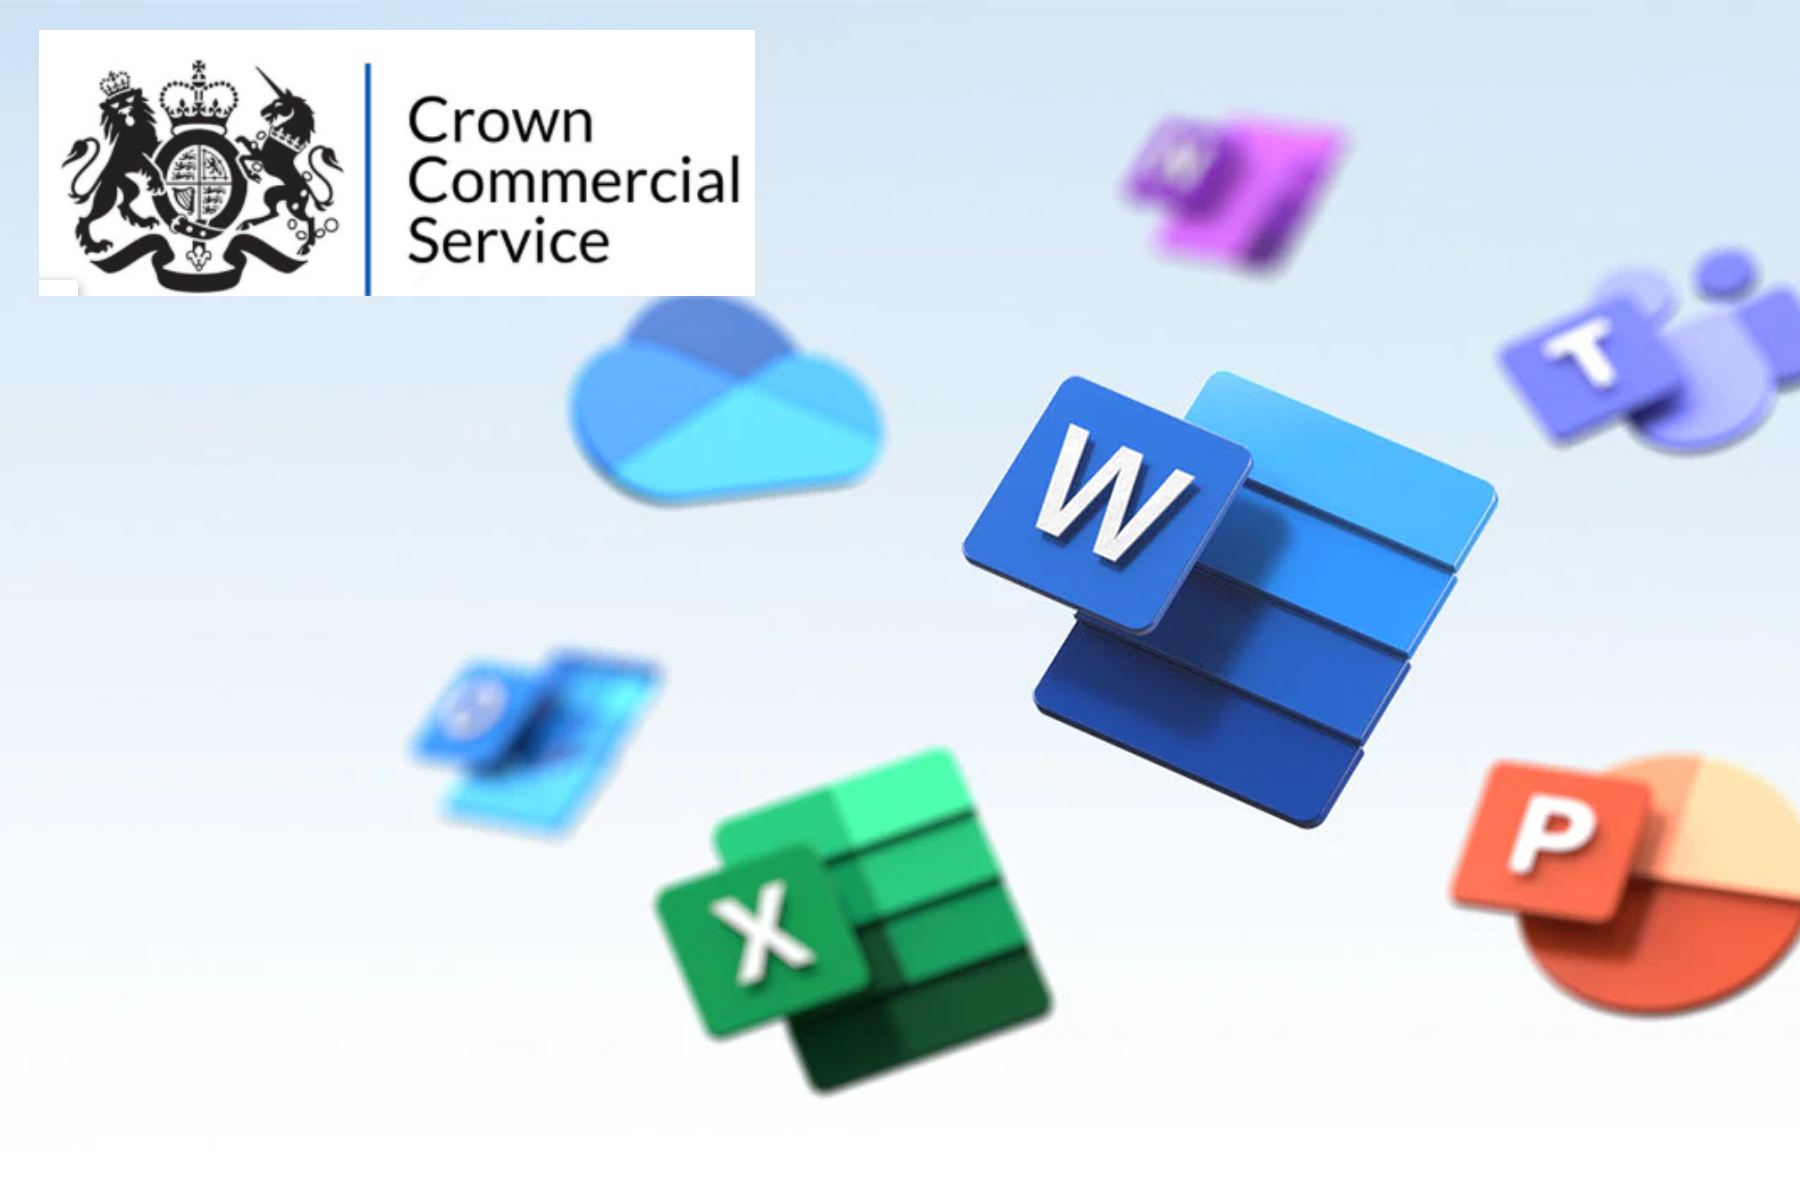 Microsoft logos with the Crown Commercial LOGO